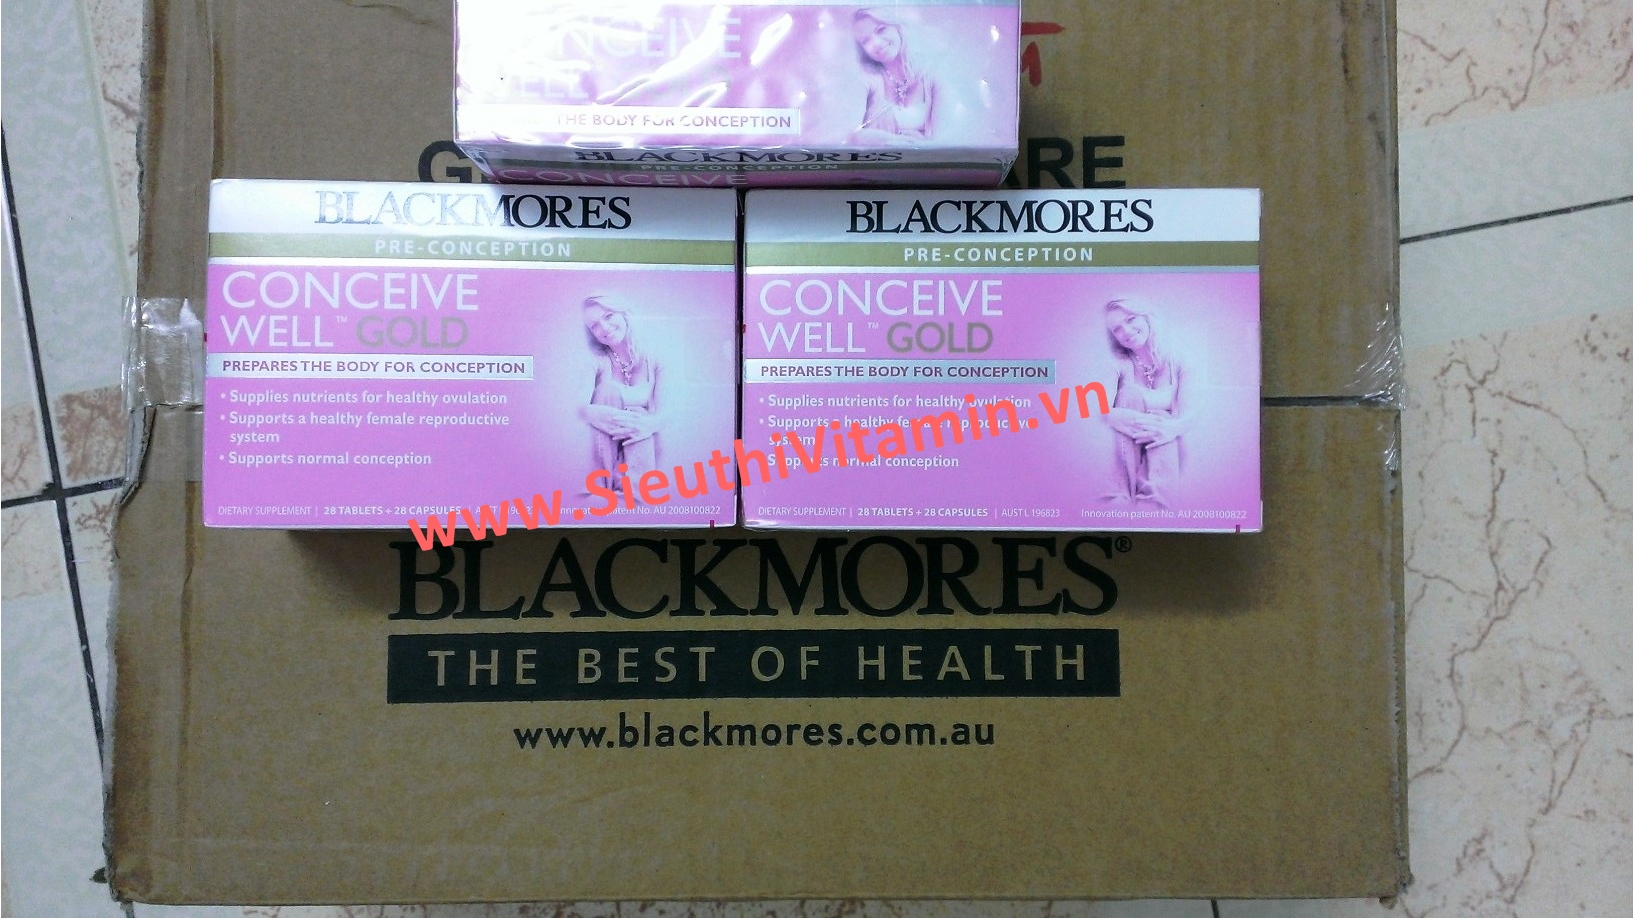 Blackmores-conceive-well-gold-ho-tro-thu-thai-hieu-qua